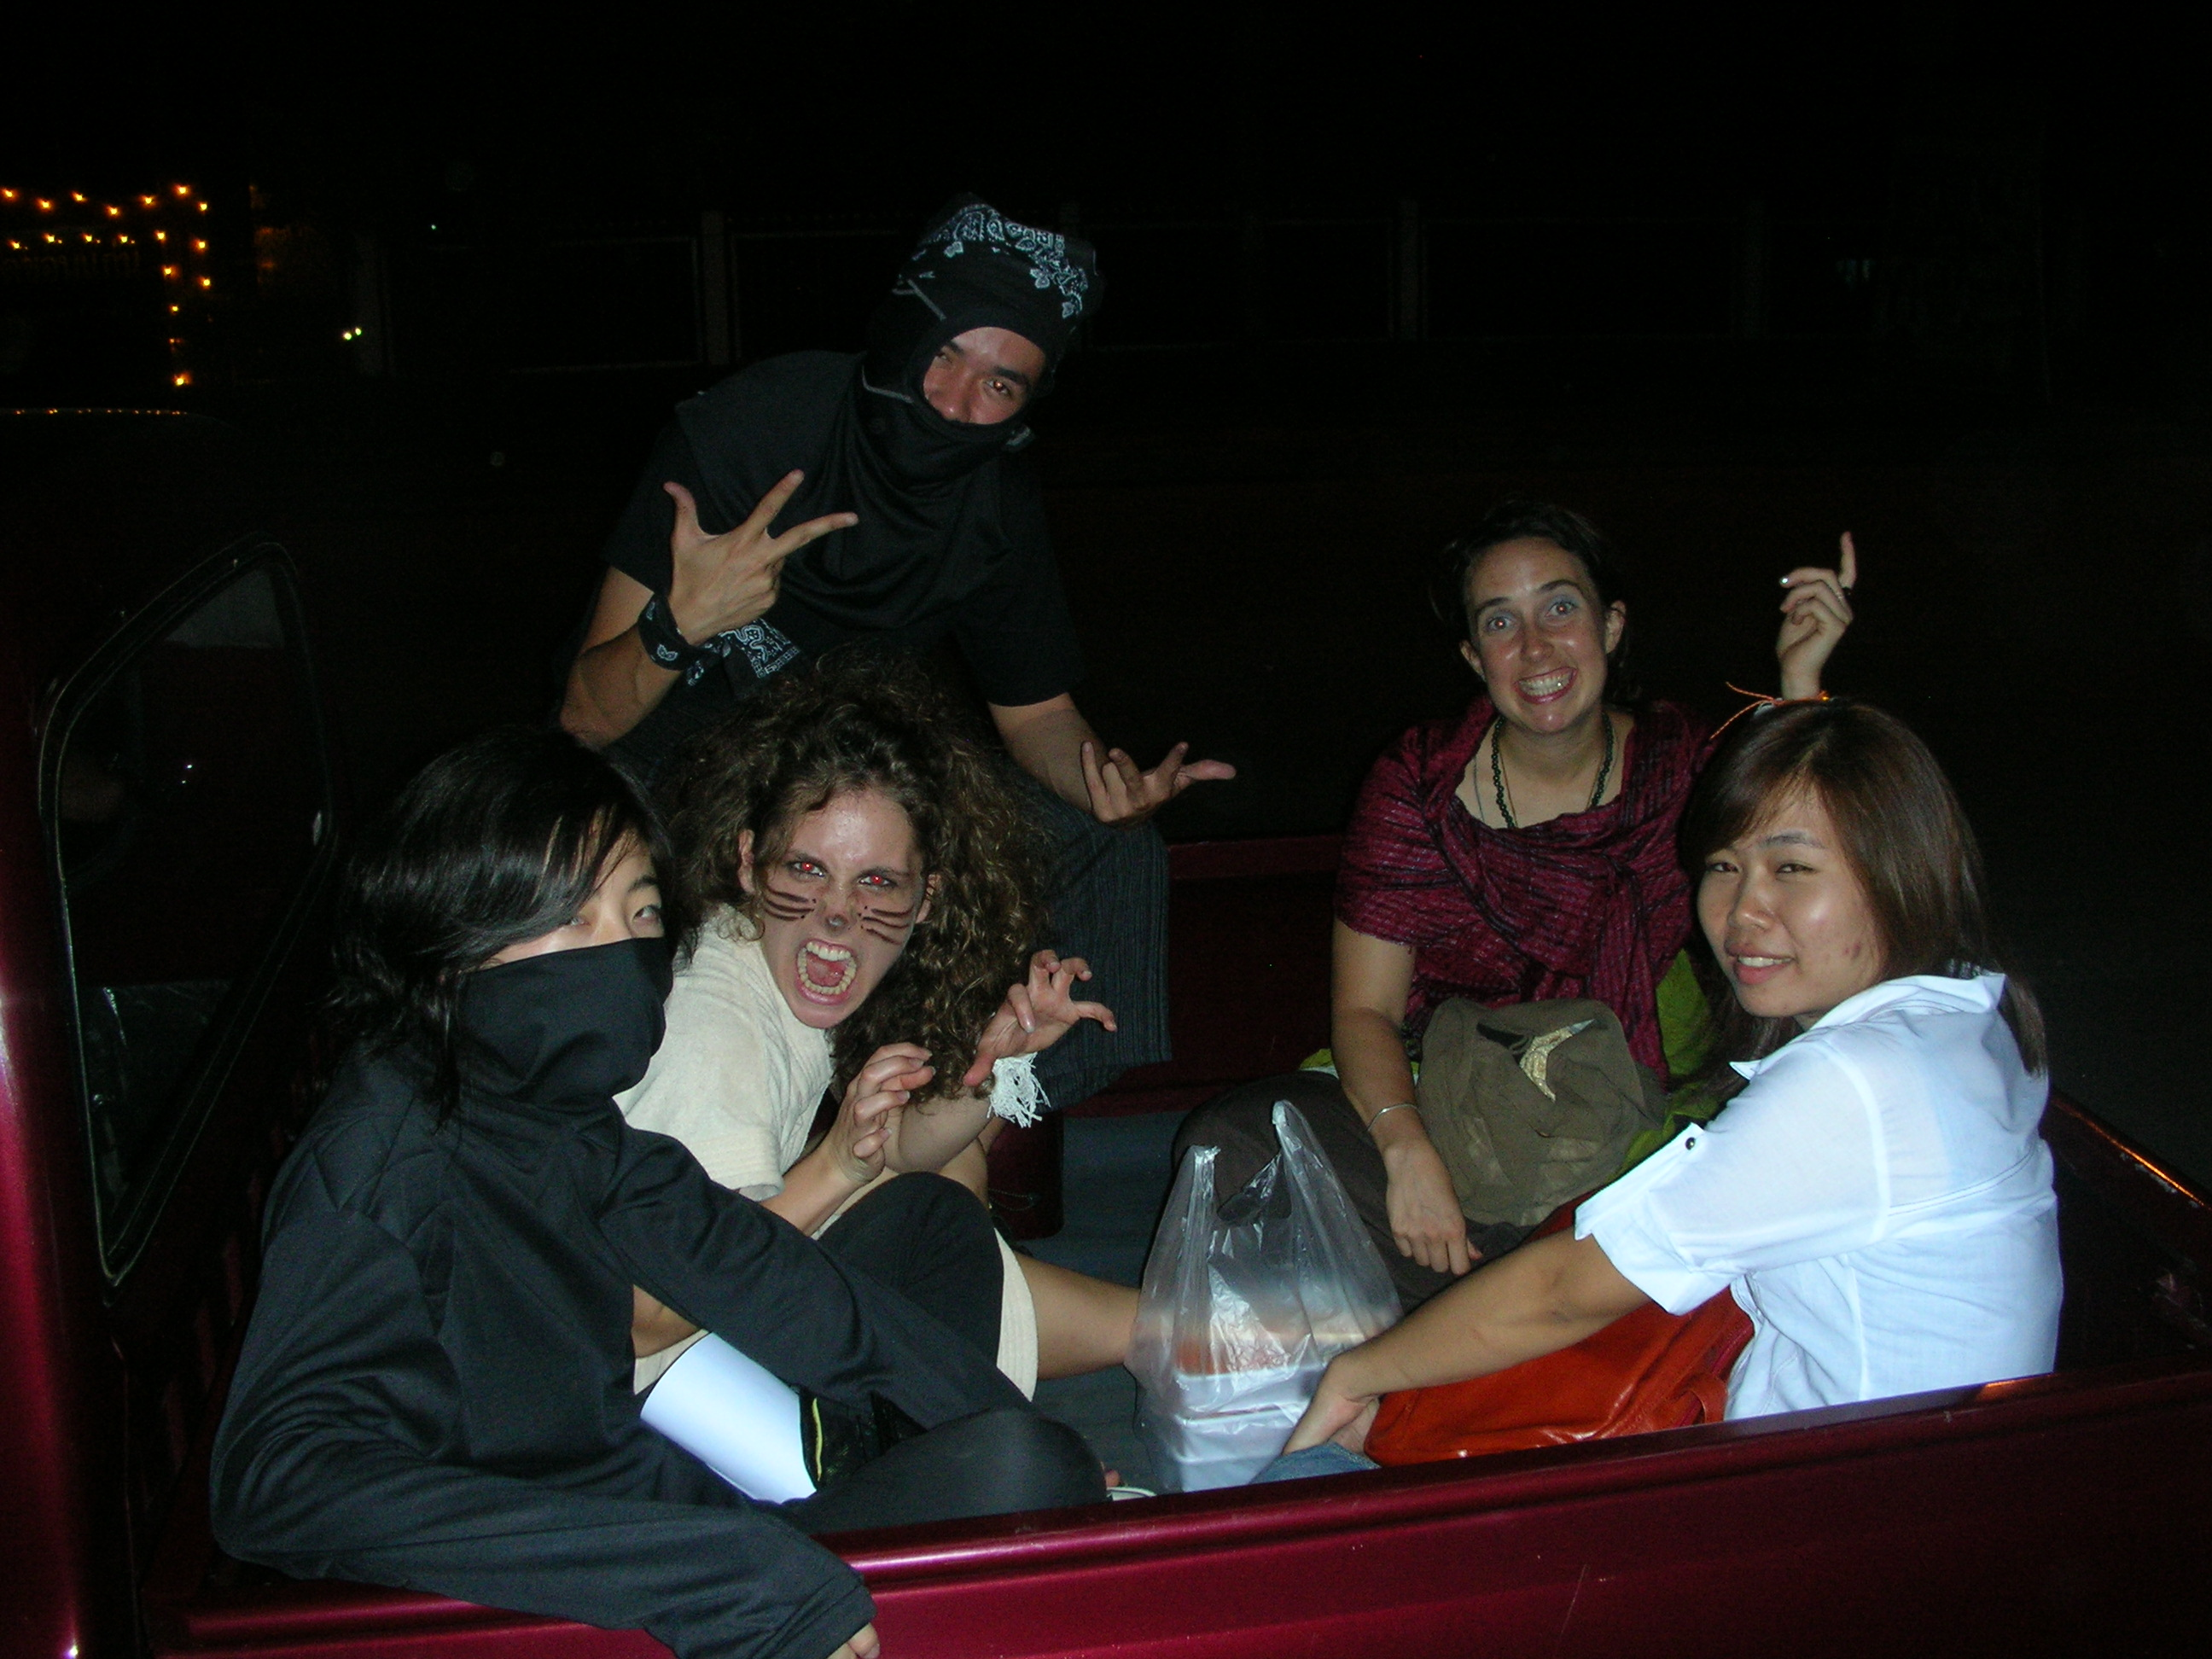 Halloween in Thailand! Two ninjas, a lion, and a fortune teller on the way to the Halloween Party at Sunset Bar. Sunset Bar is outside the city and if you call they will come pick you up with their truck. The bar is like an artsy/woodsy version of the Sundowner for all you Boulder folks reading this.